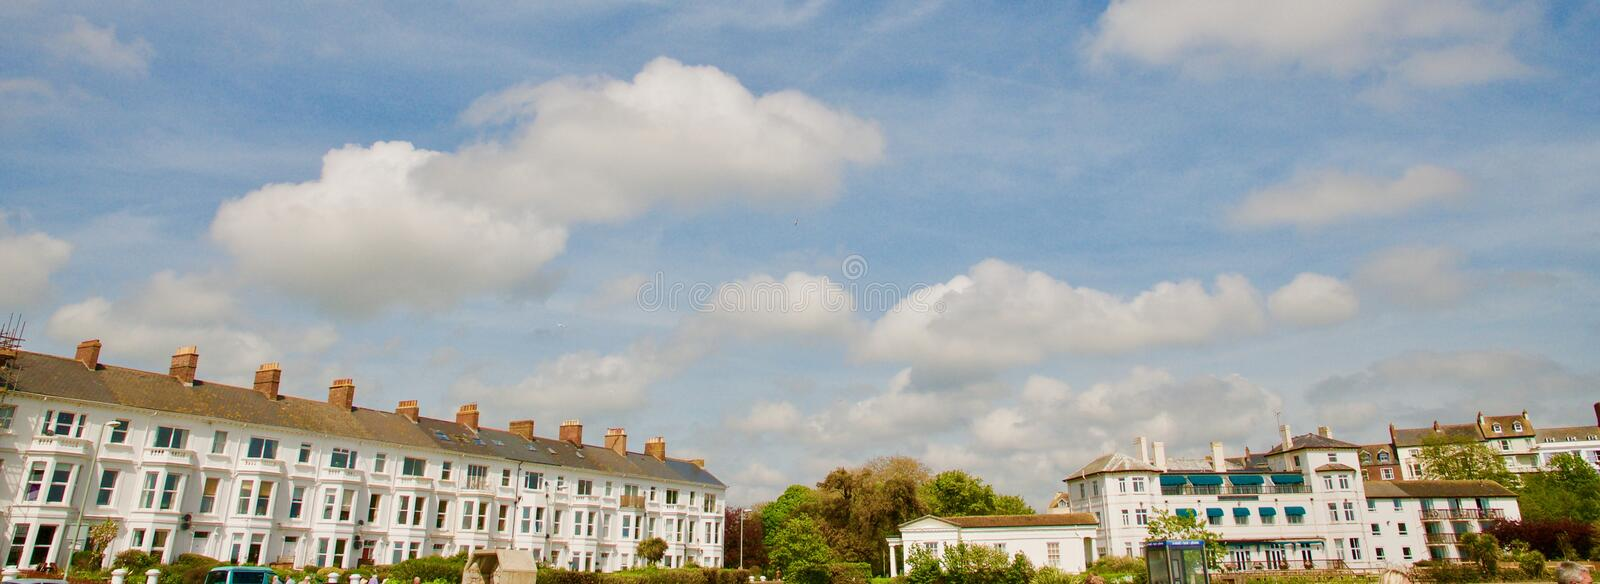 Seafront buildings at Exmouth. Exmouth beach Devon England united kingdom royalty free stock photos